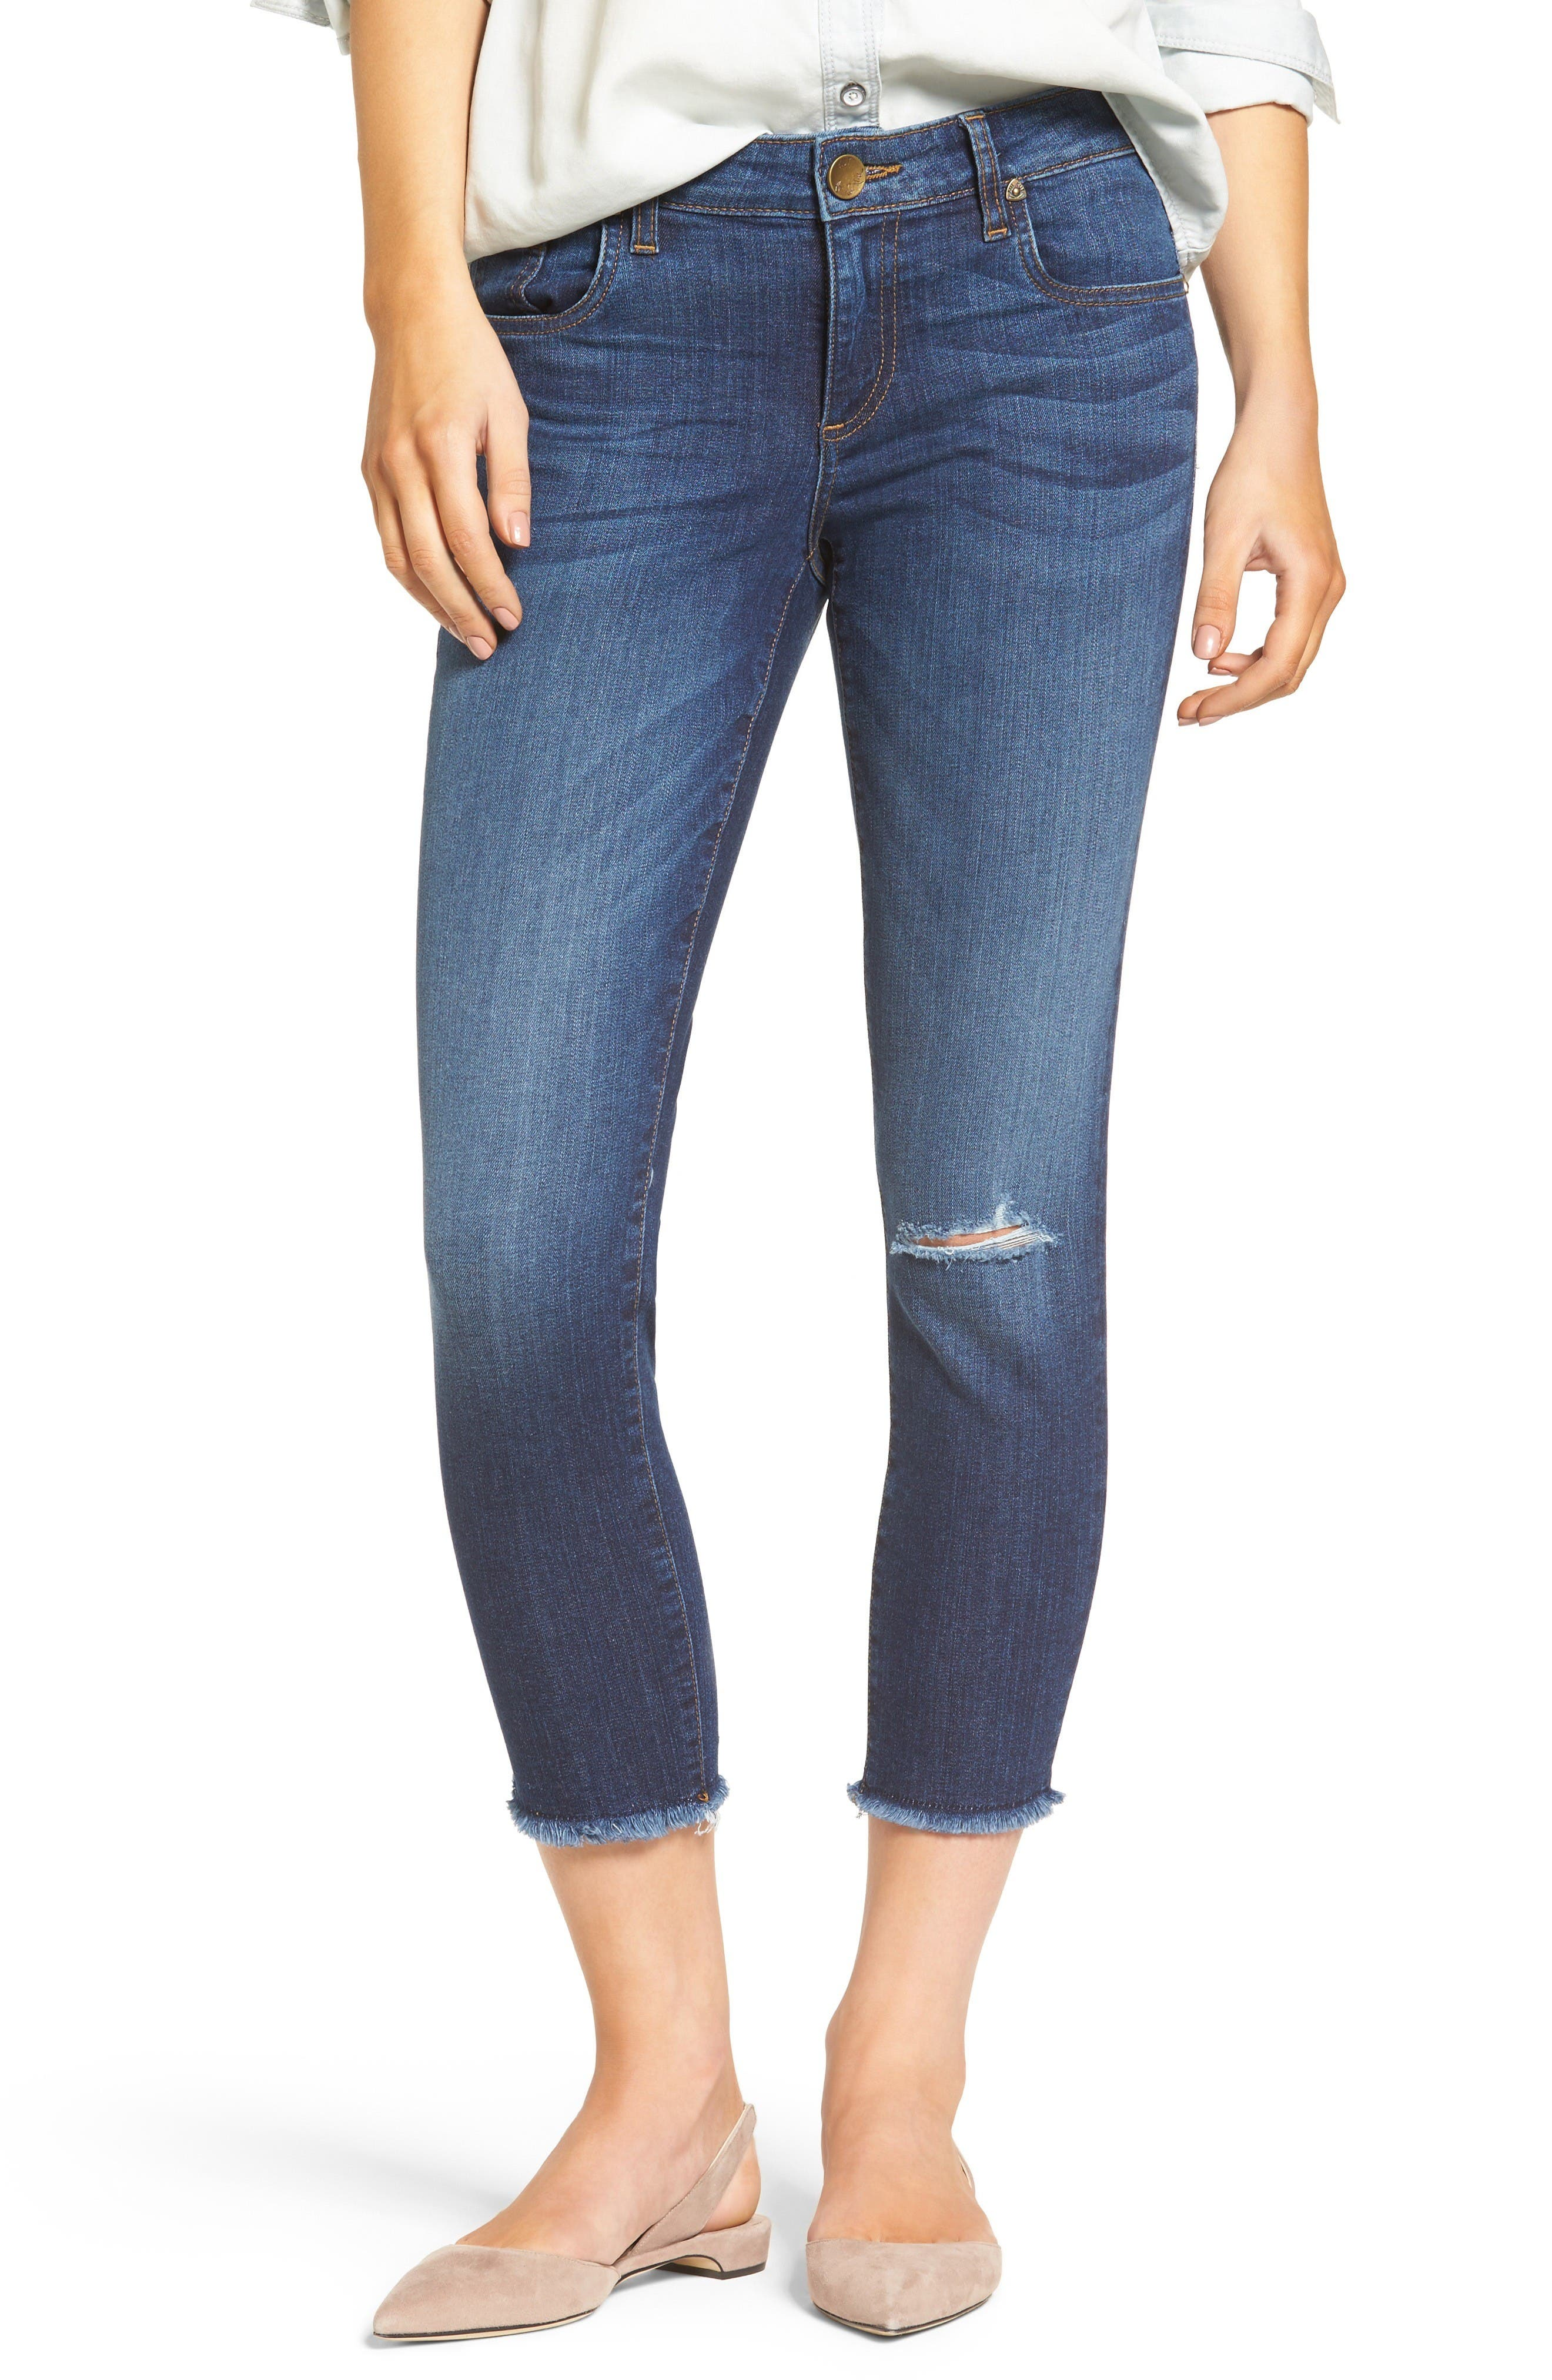 Main Image - KUT from the Kloth Donna Ripped Crop Jeans (Peaceable) (Regular & Petite)